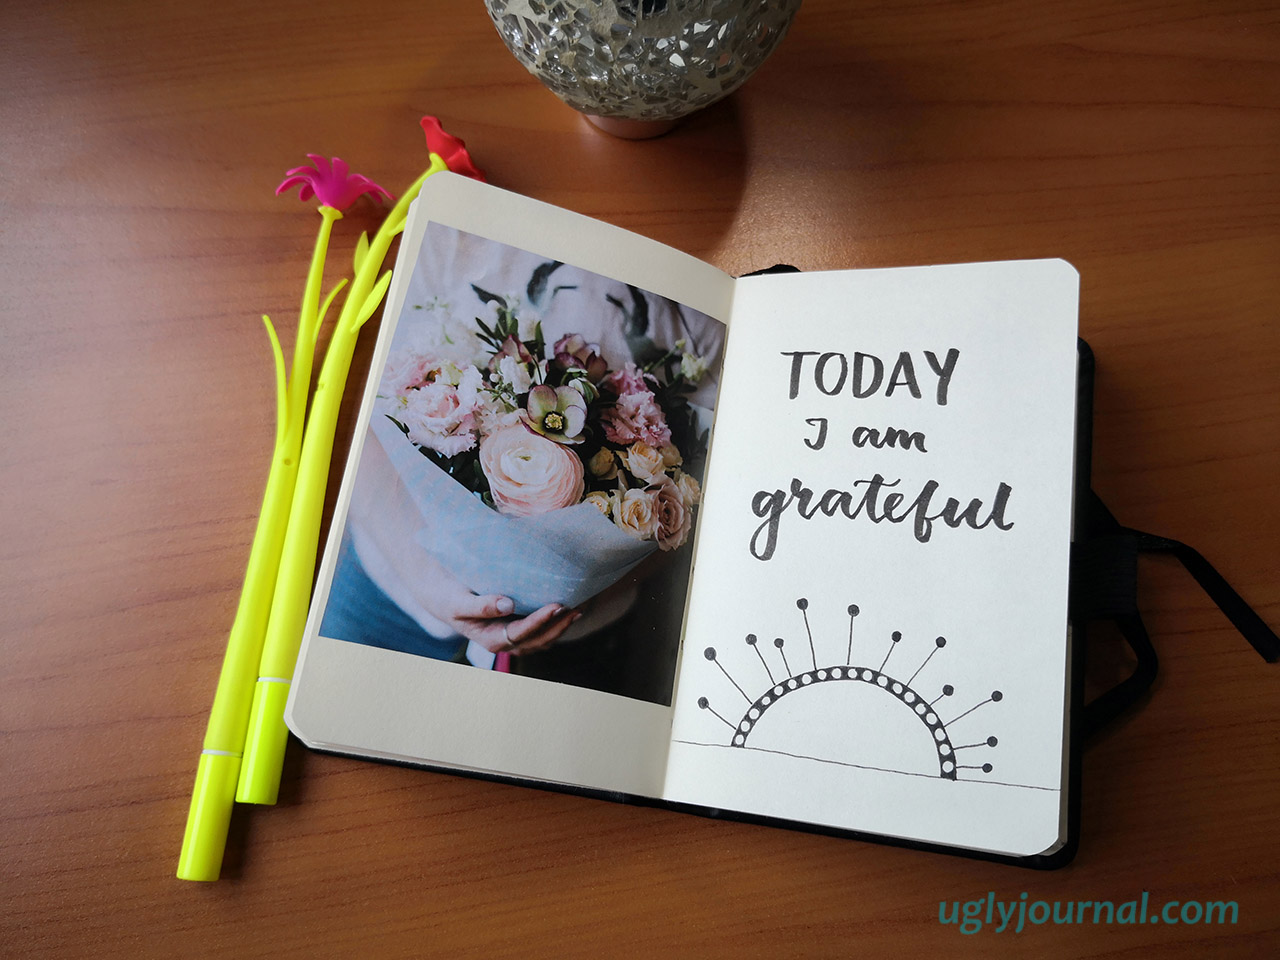 HOW TO CHANGE YOUR PERSPECTIVE WITH A GRATITUDE JOURNAL